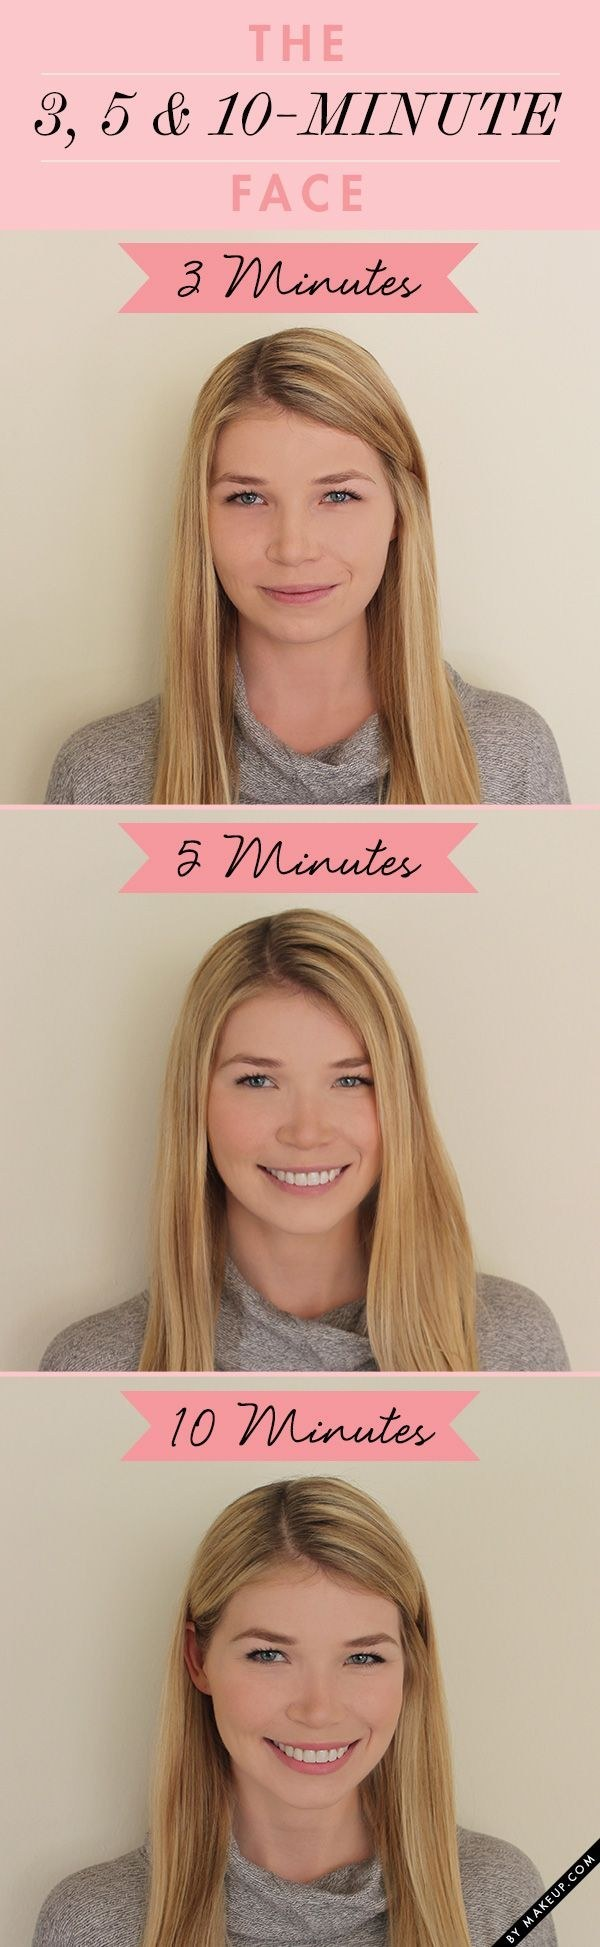 10 Easy Makeup Tips for Girls - Pretty Designs